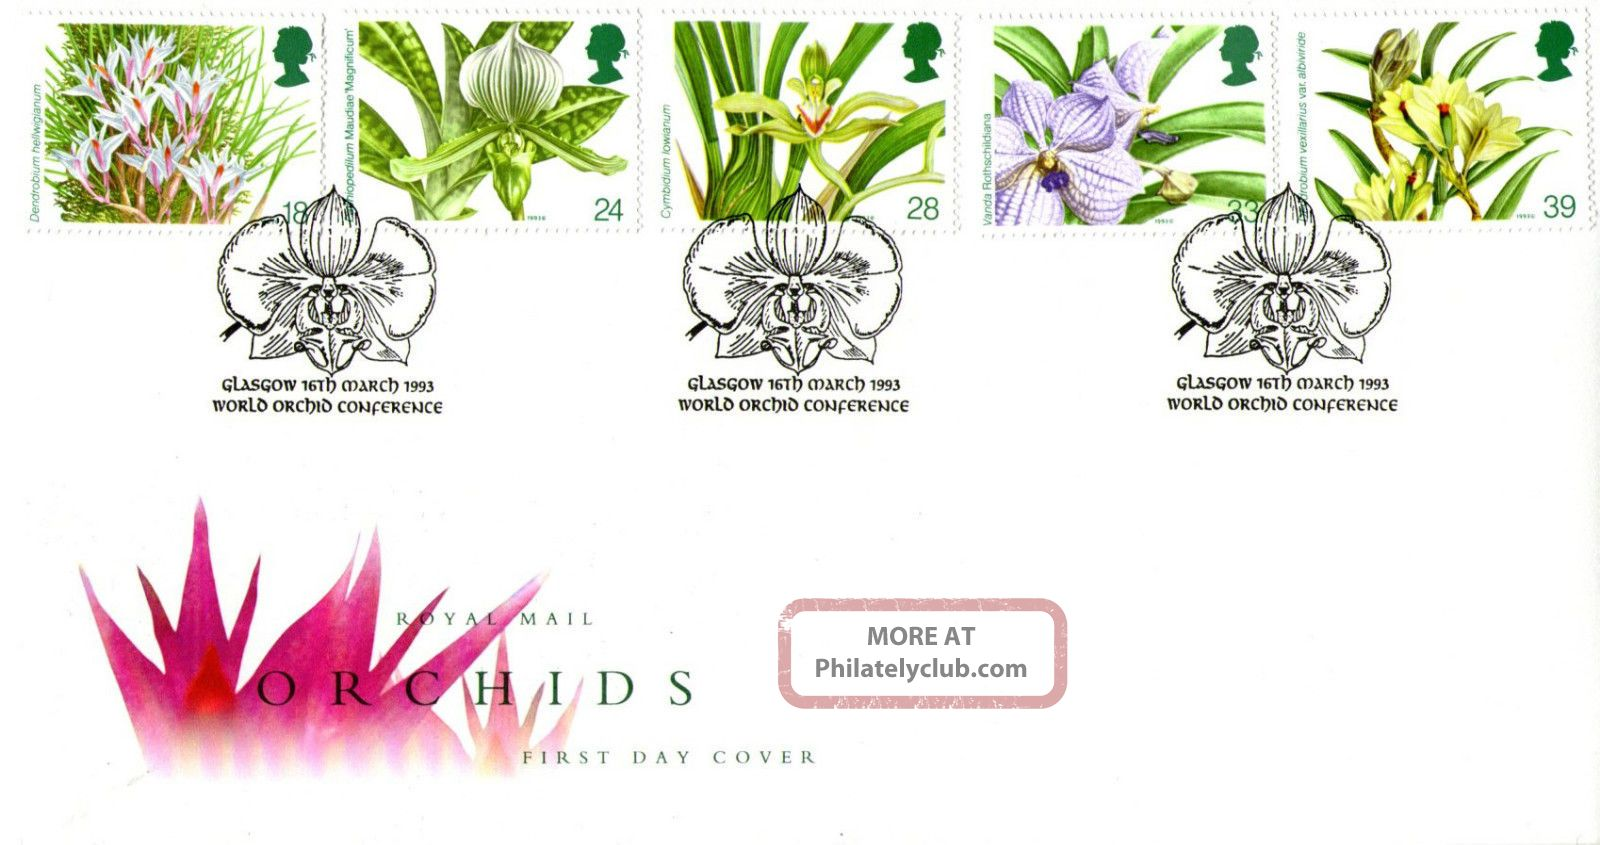 16 March 1993 Orchids Royal Mail First Day Cover World Orchid Conference Shs Topical Stamps photo